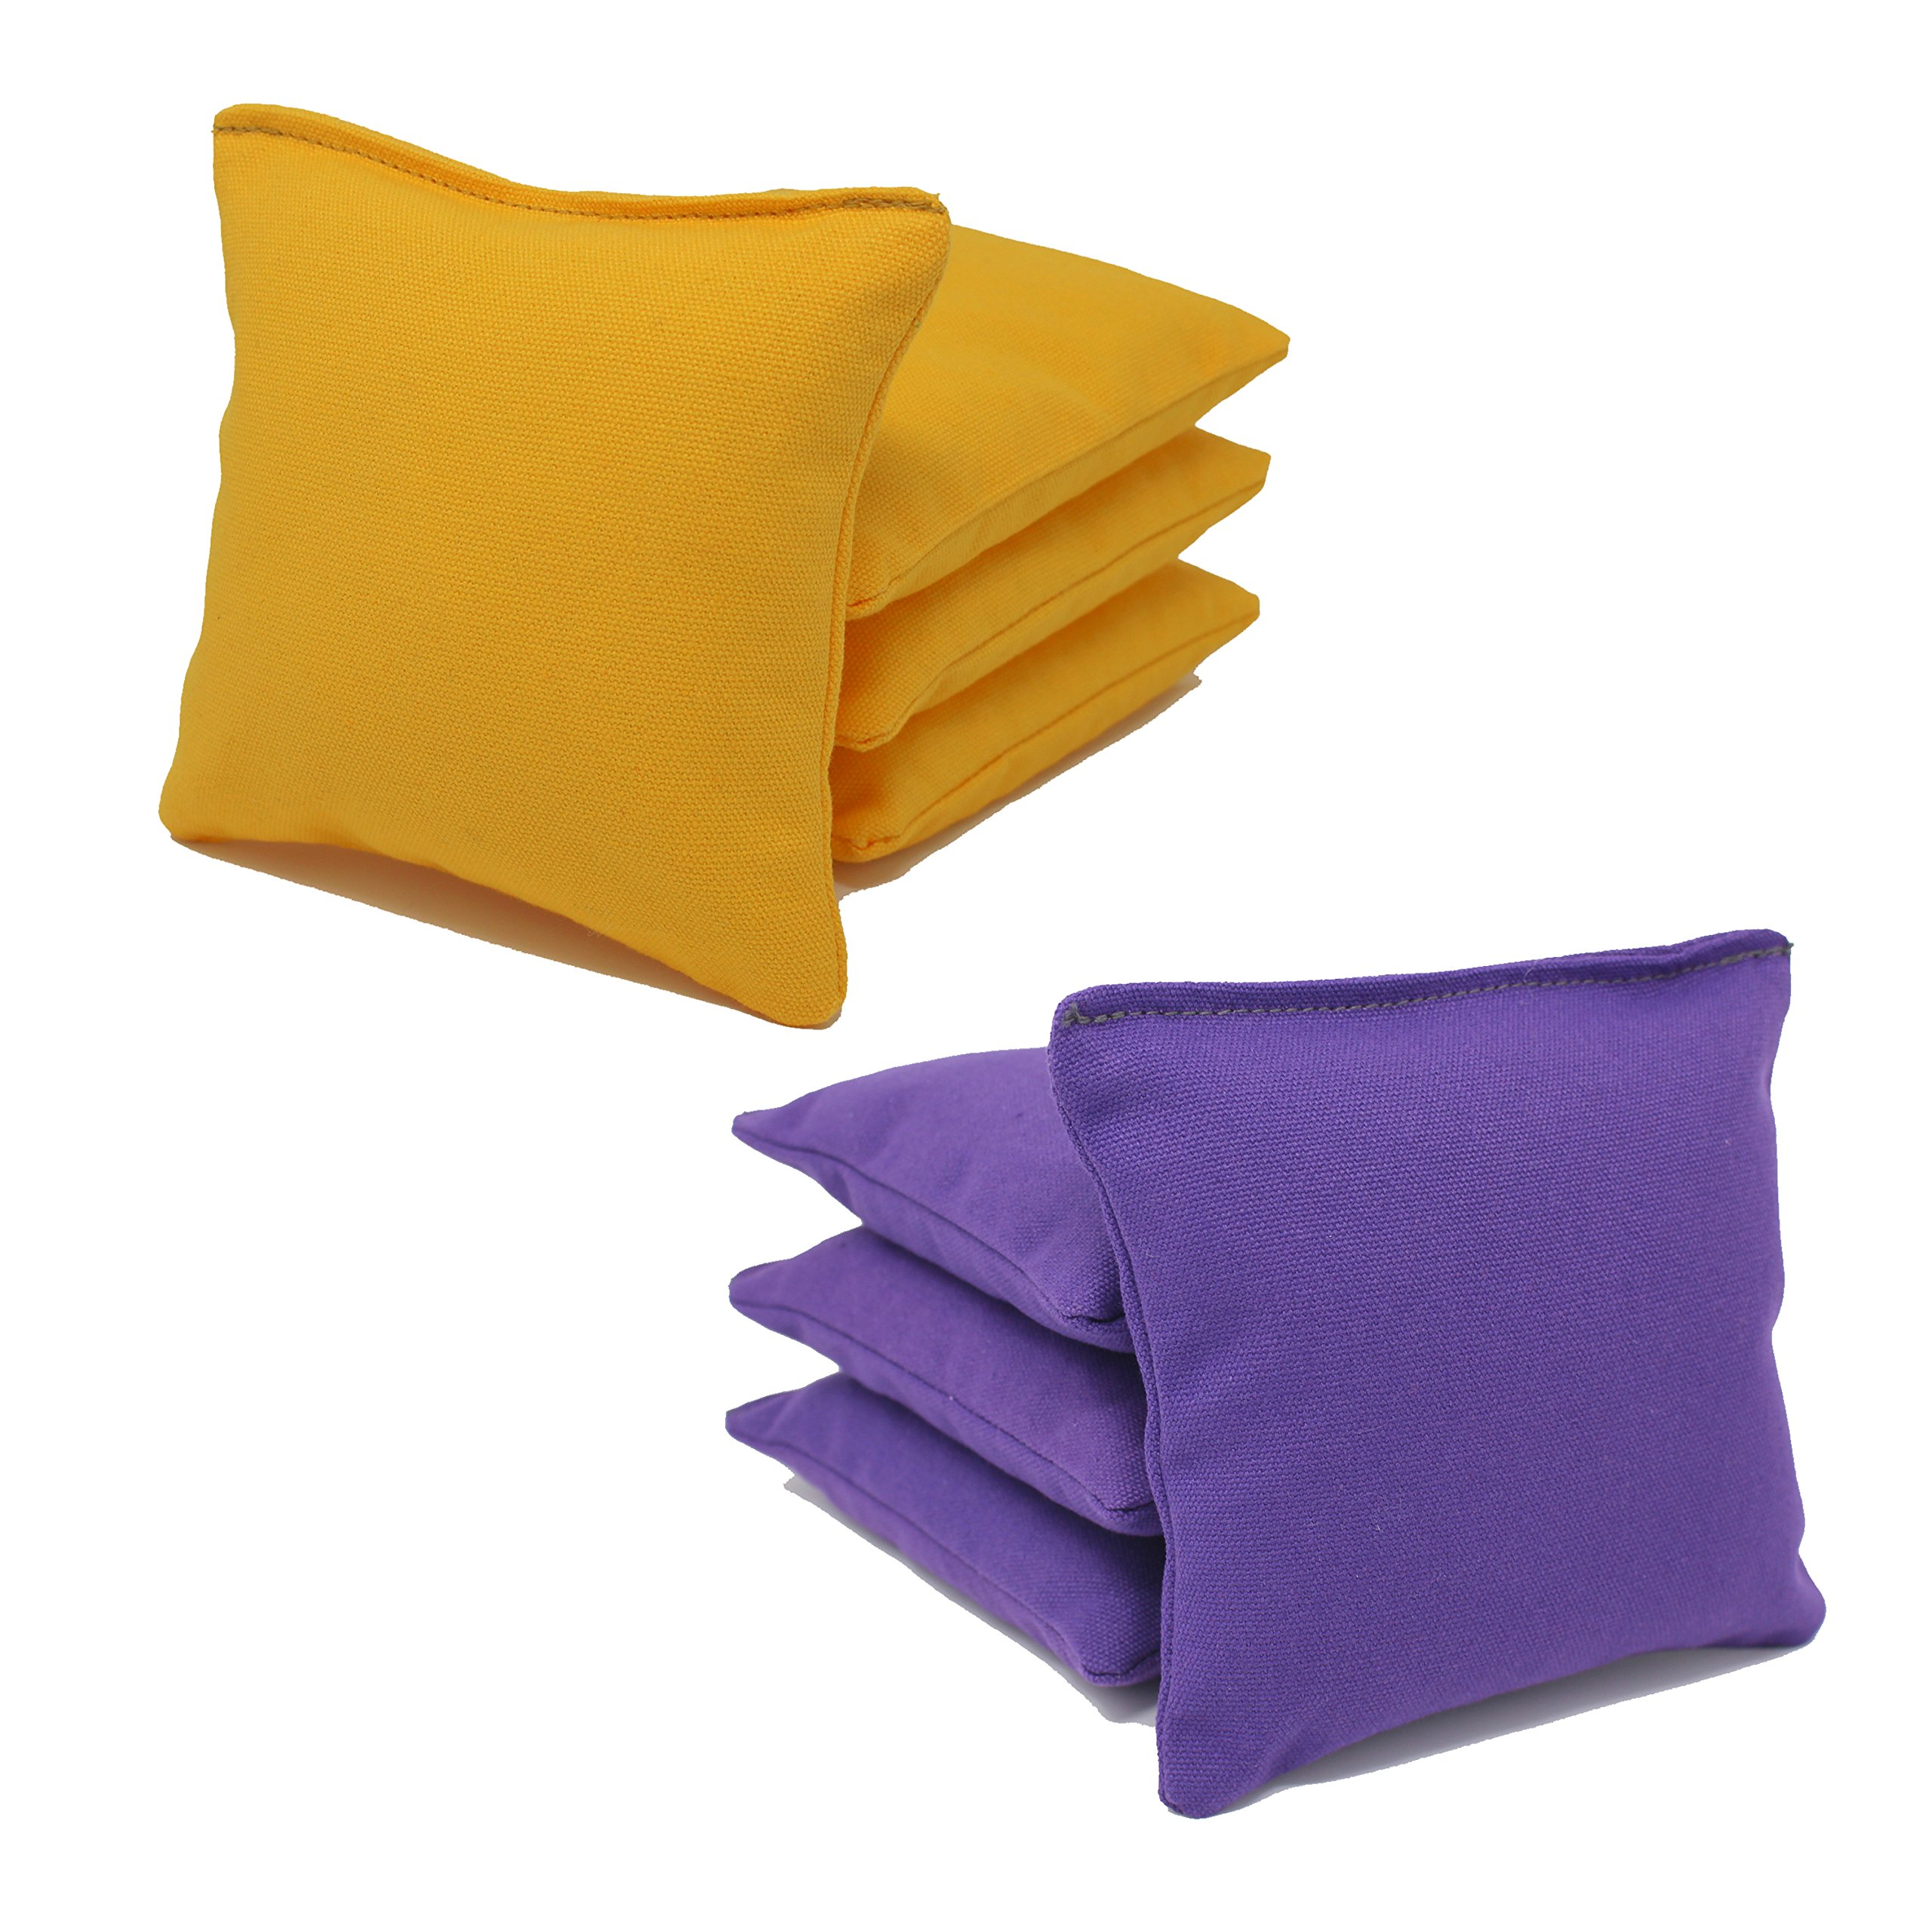 Free Donkey Sports ACA Regulation Cornhole Bags (Set of 8) (Purple and Yellow) 25 Colors to Choose from. by Free Donkey Sports